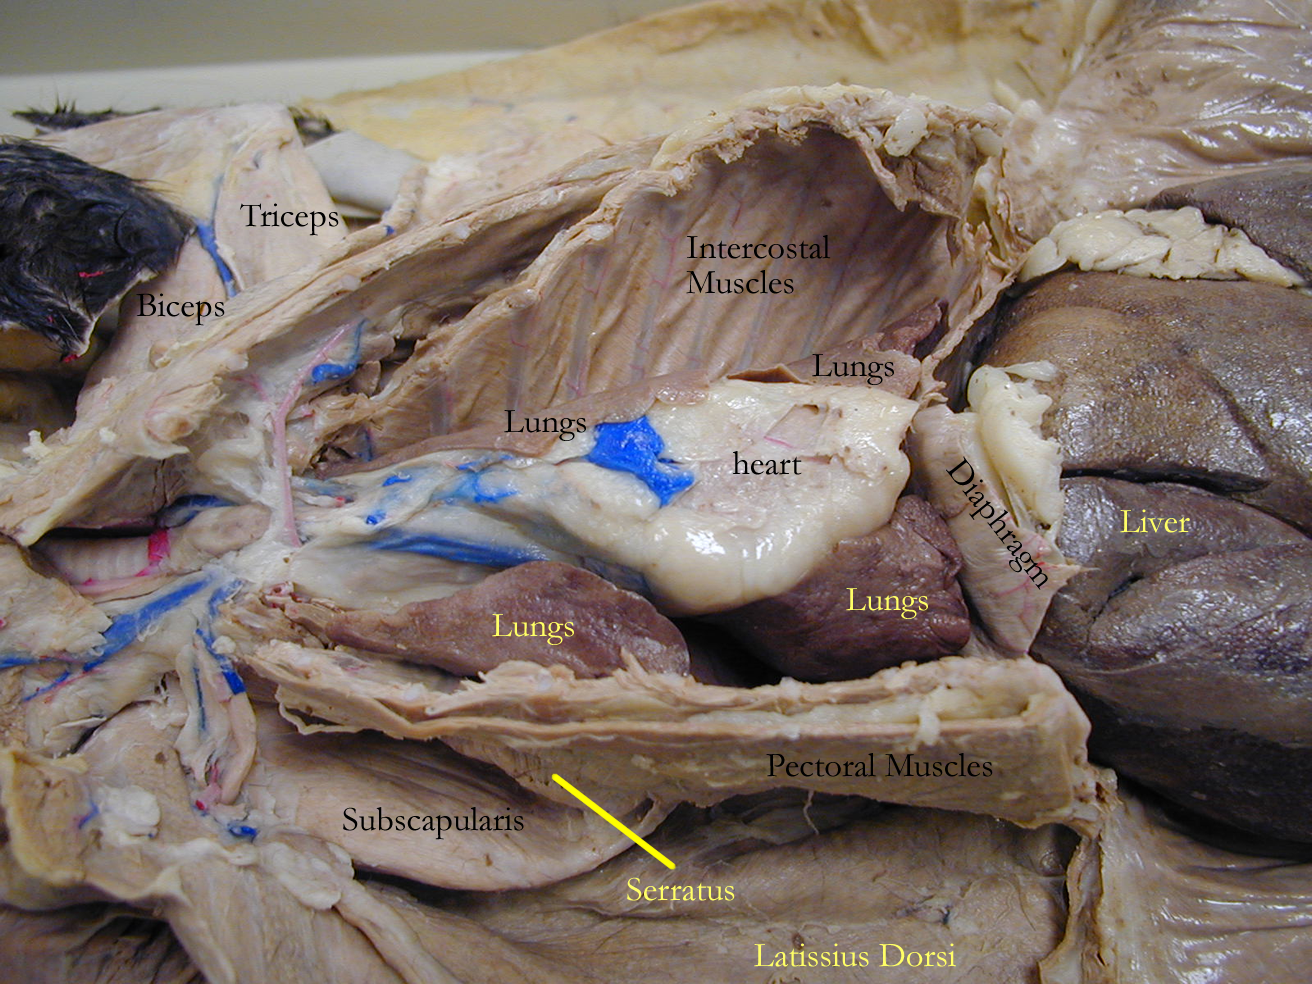 Biology 2404 Ap Basics Chicken Leg Dissection Diagram For Pinterest Specimens Cat Thorax Abdomen